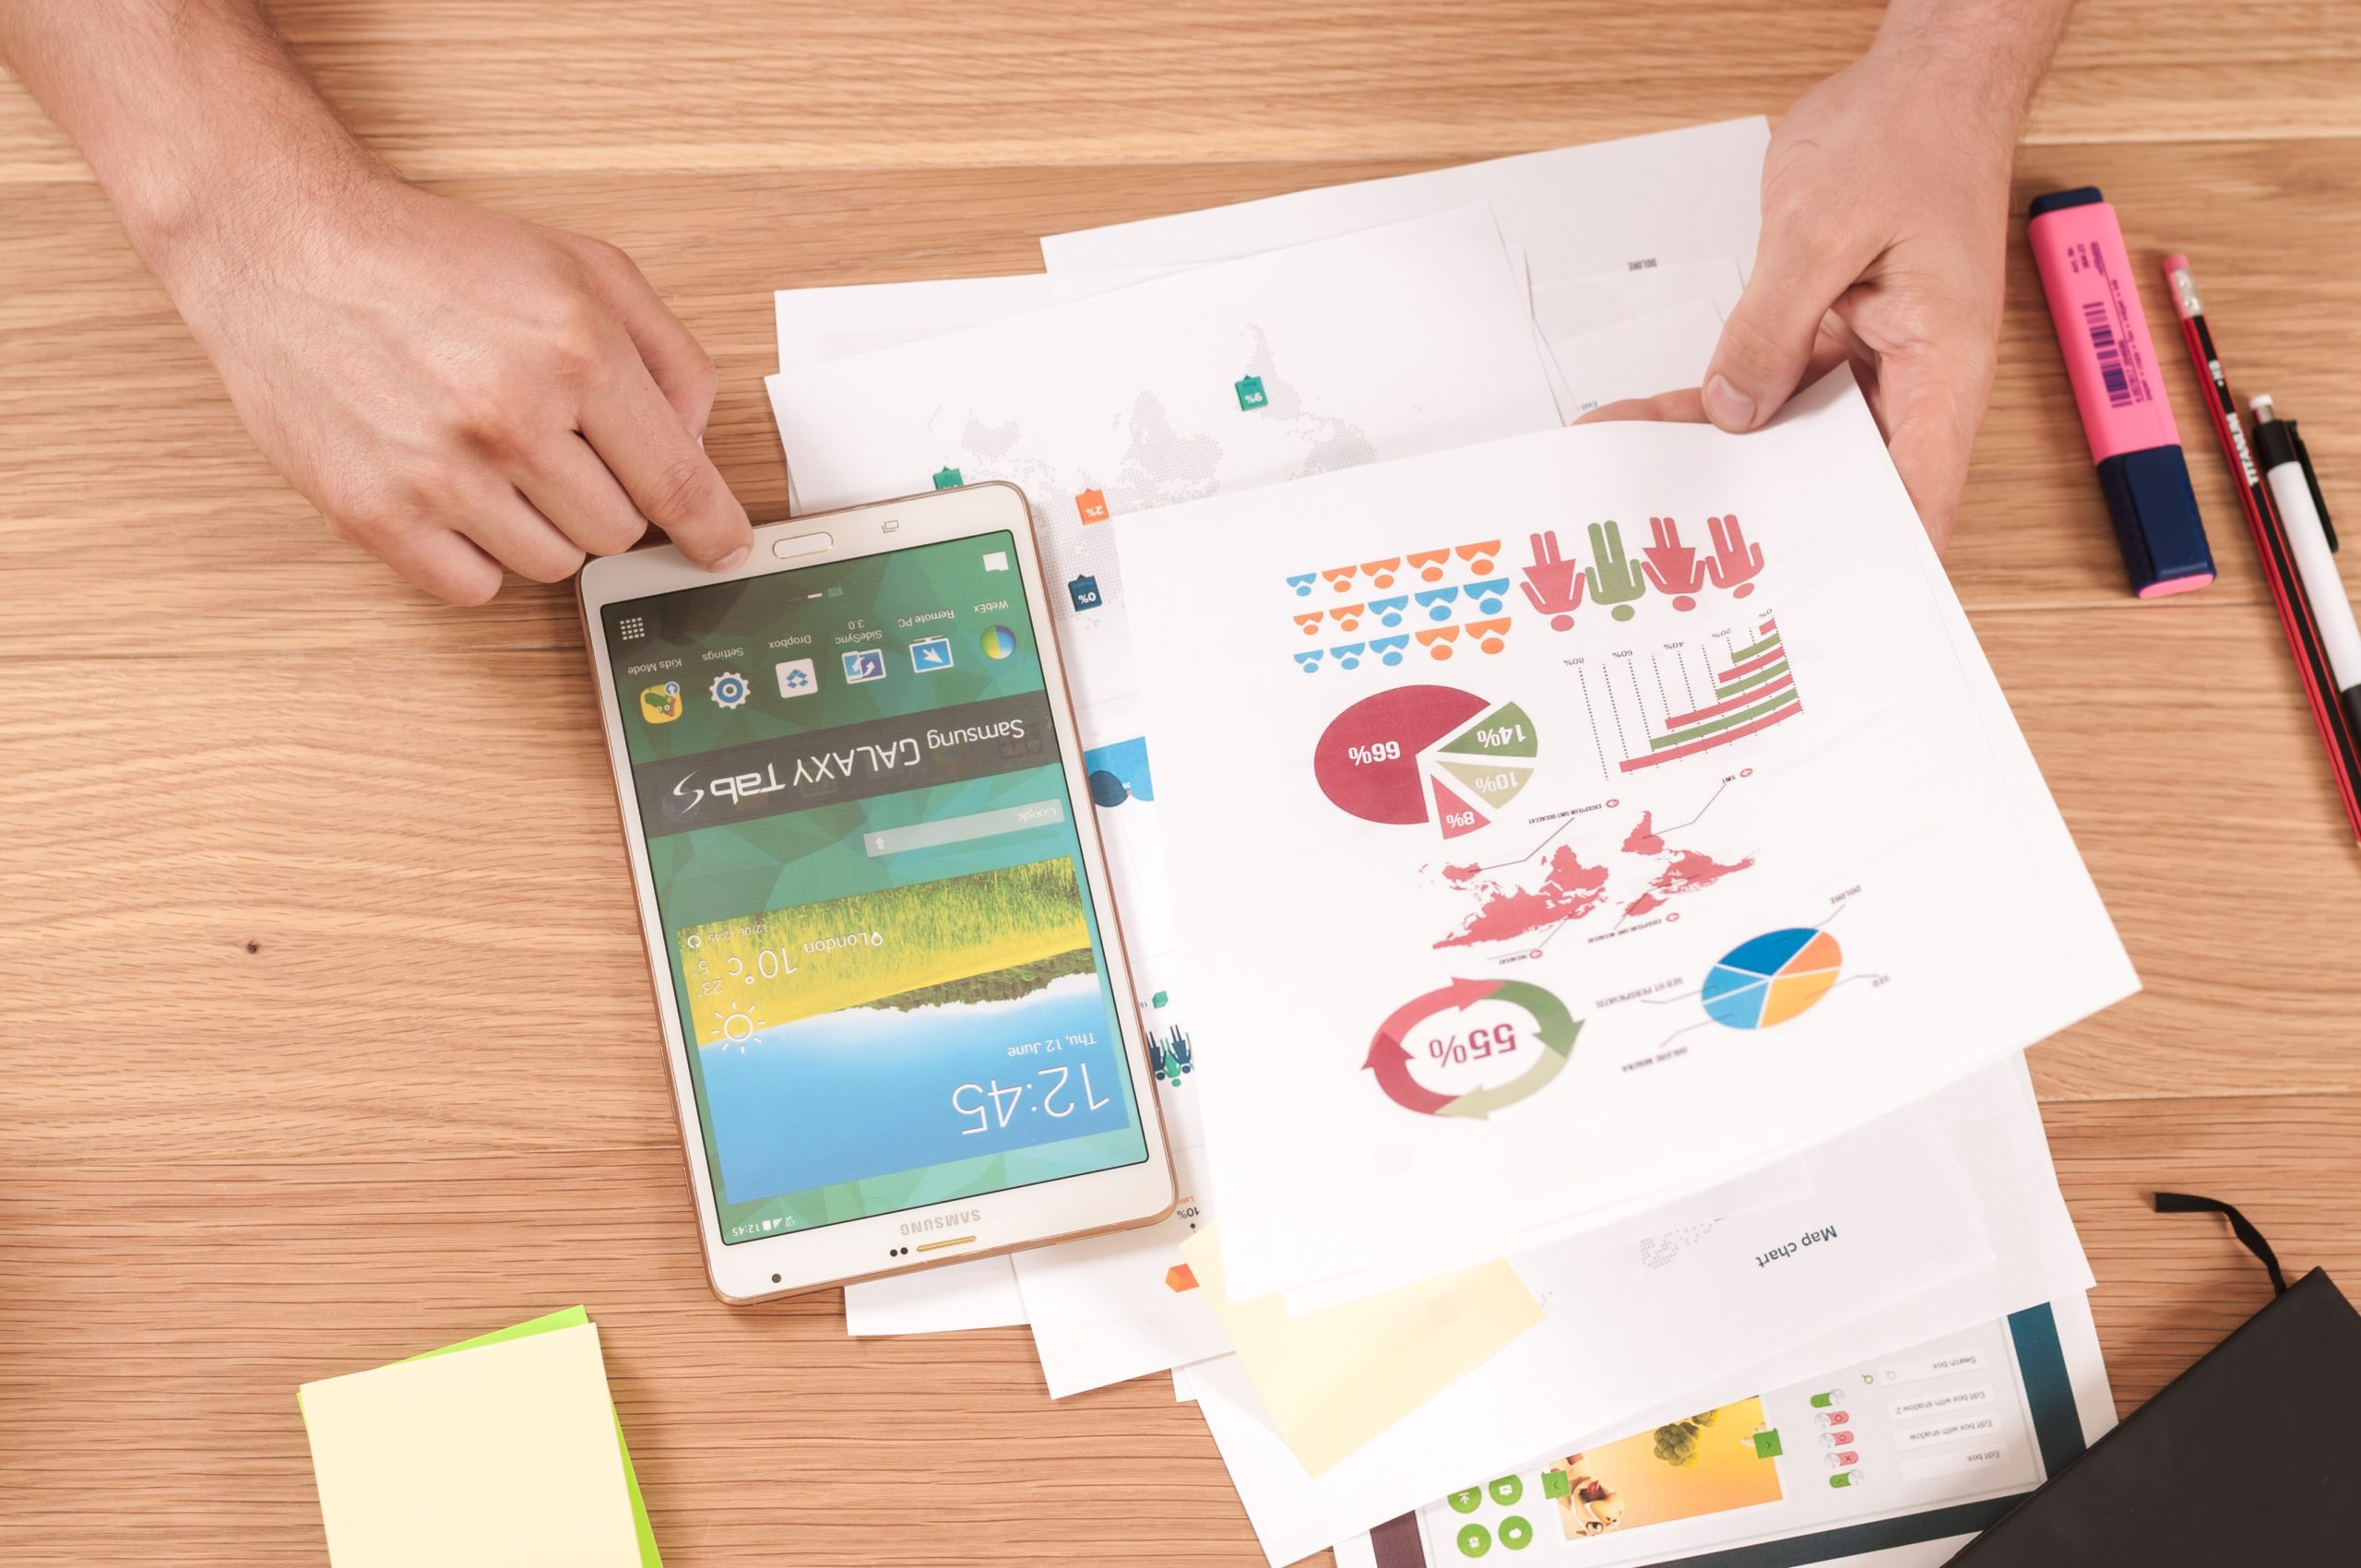 charts and graphs to show importance of financial forecasting for business owners who want to increase their company's cash flow